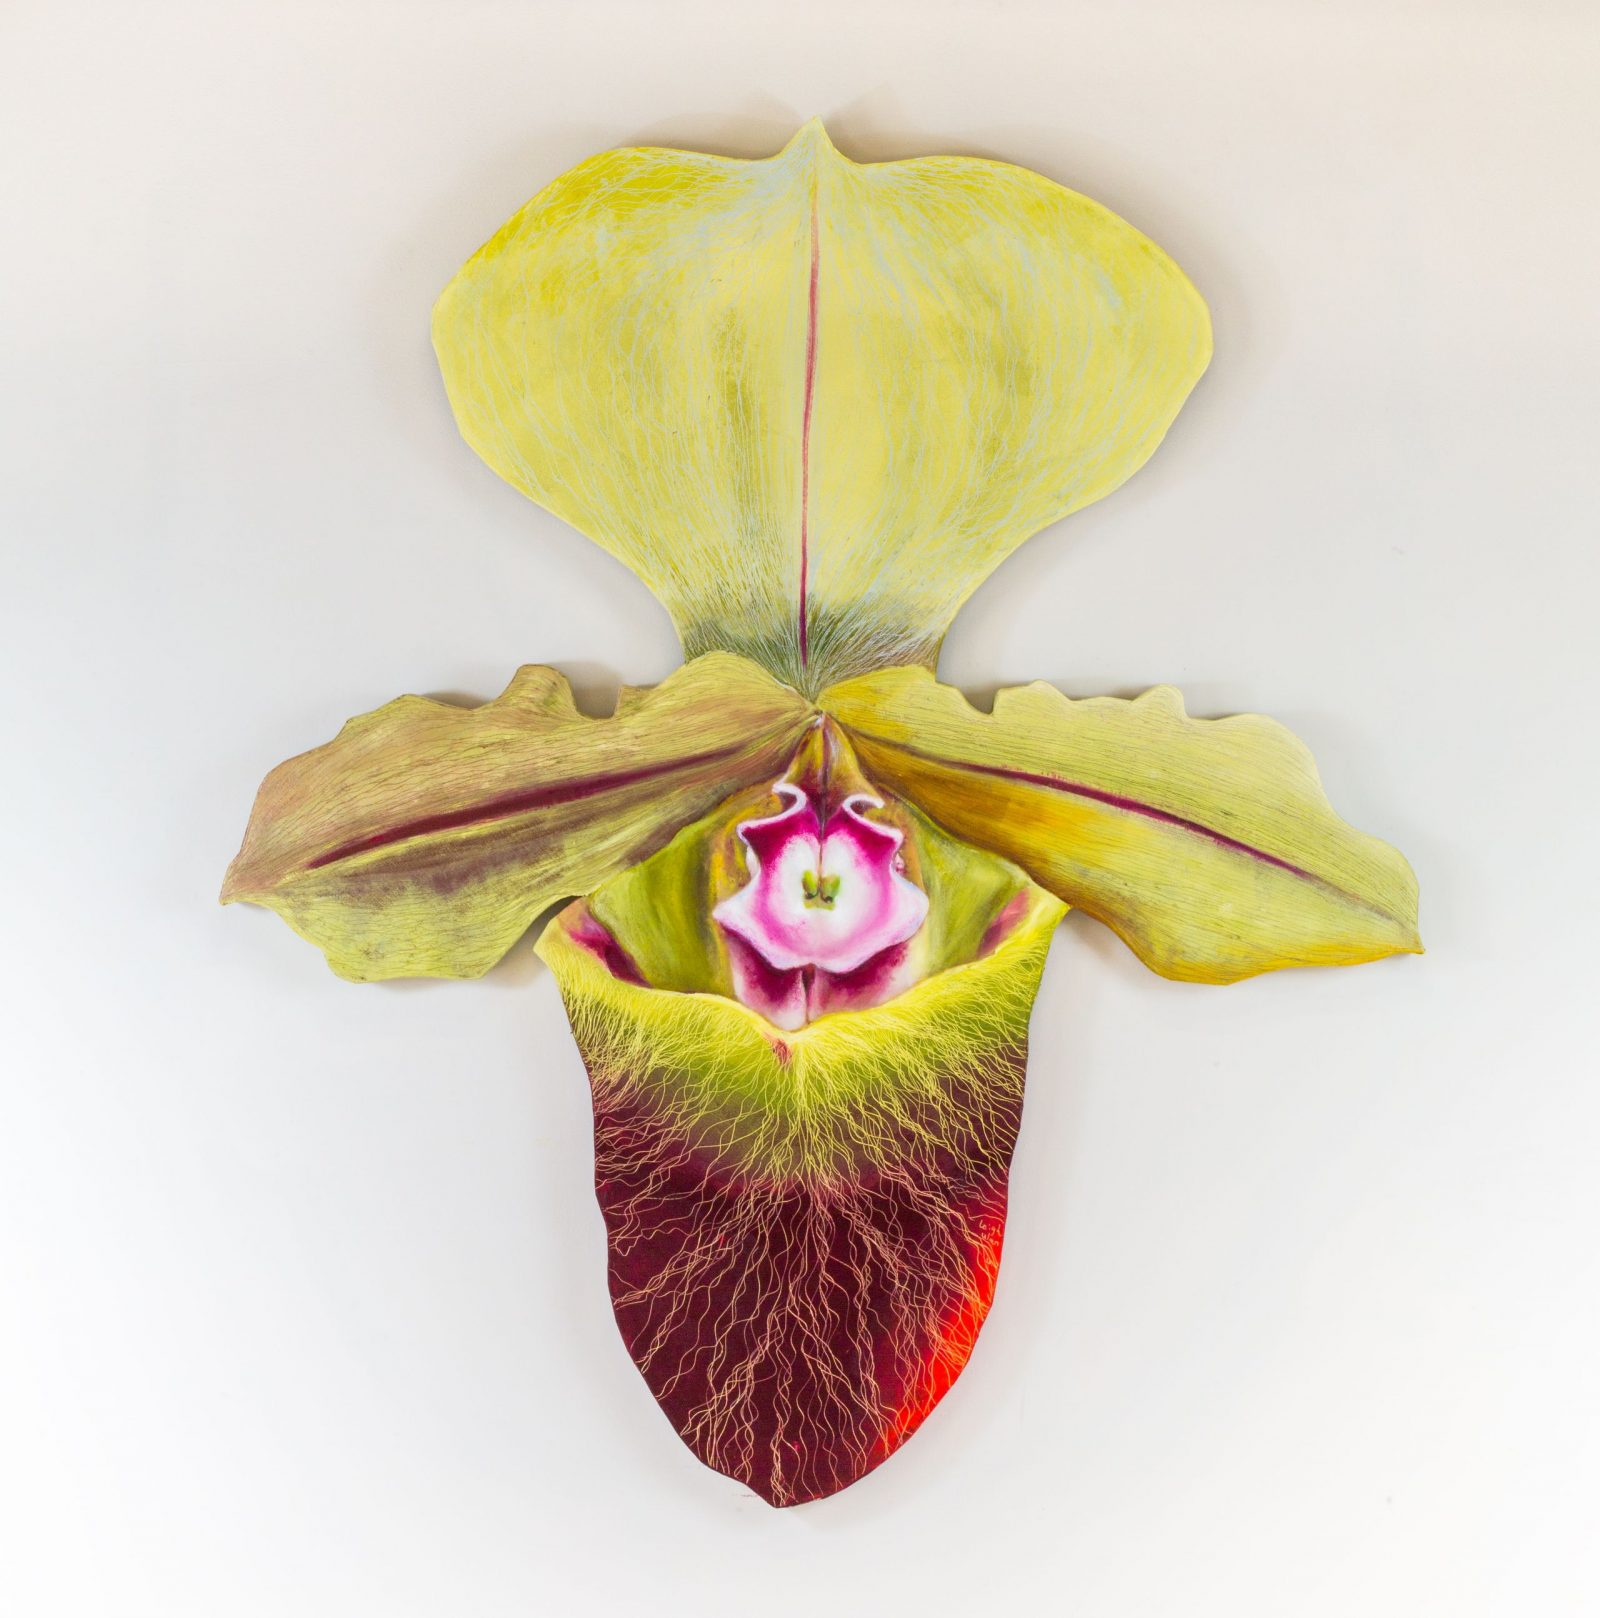 拖鞋蘭 1,Lady Slipper-1,174 x 152 cm, oil on canvas, 2014